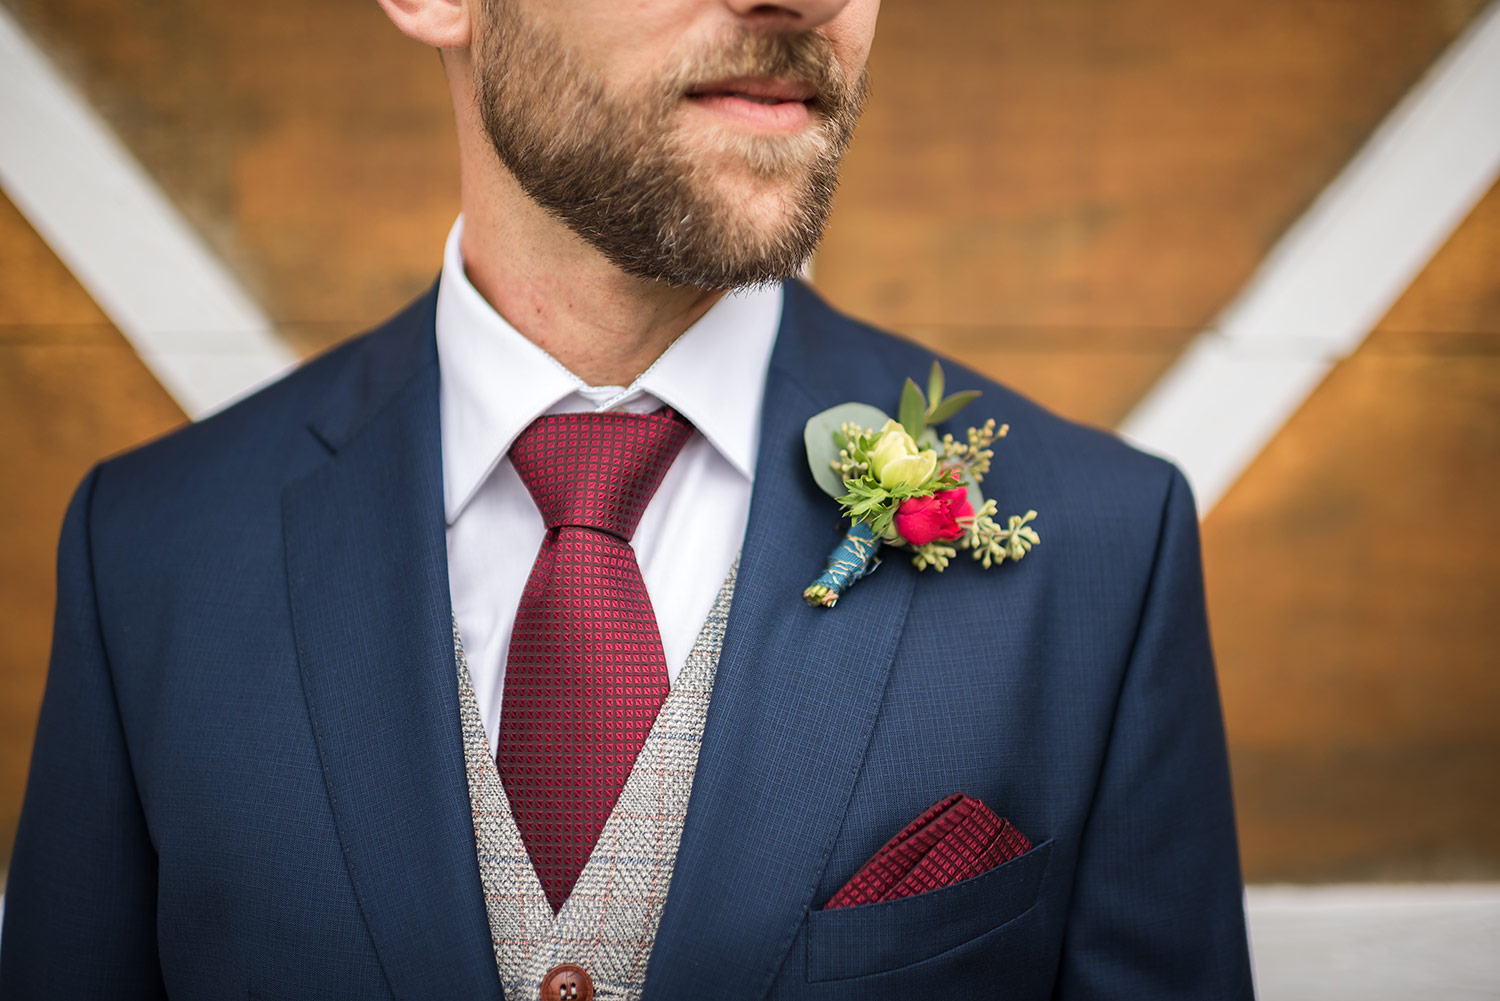 Groom and boutonniere at Whidbey Island wedding at Comforts Winery